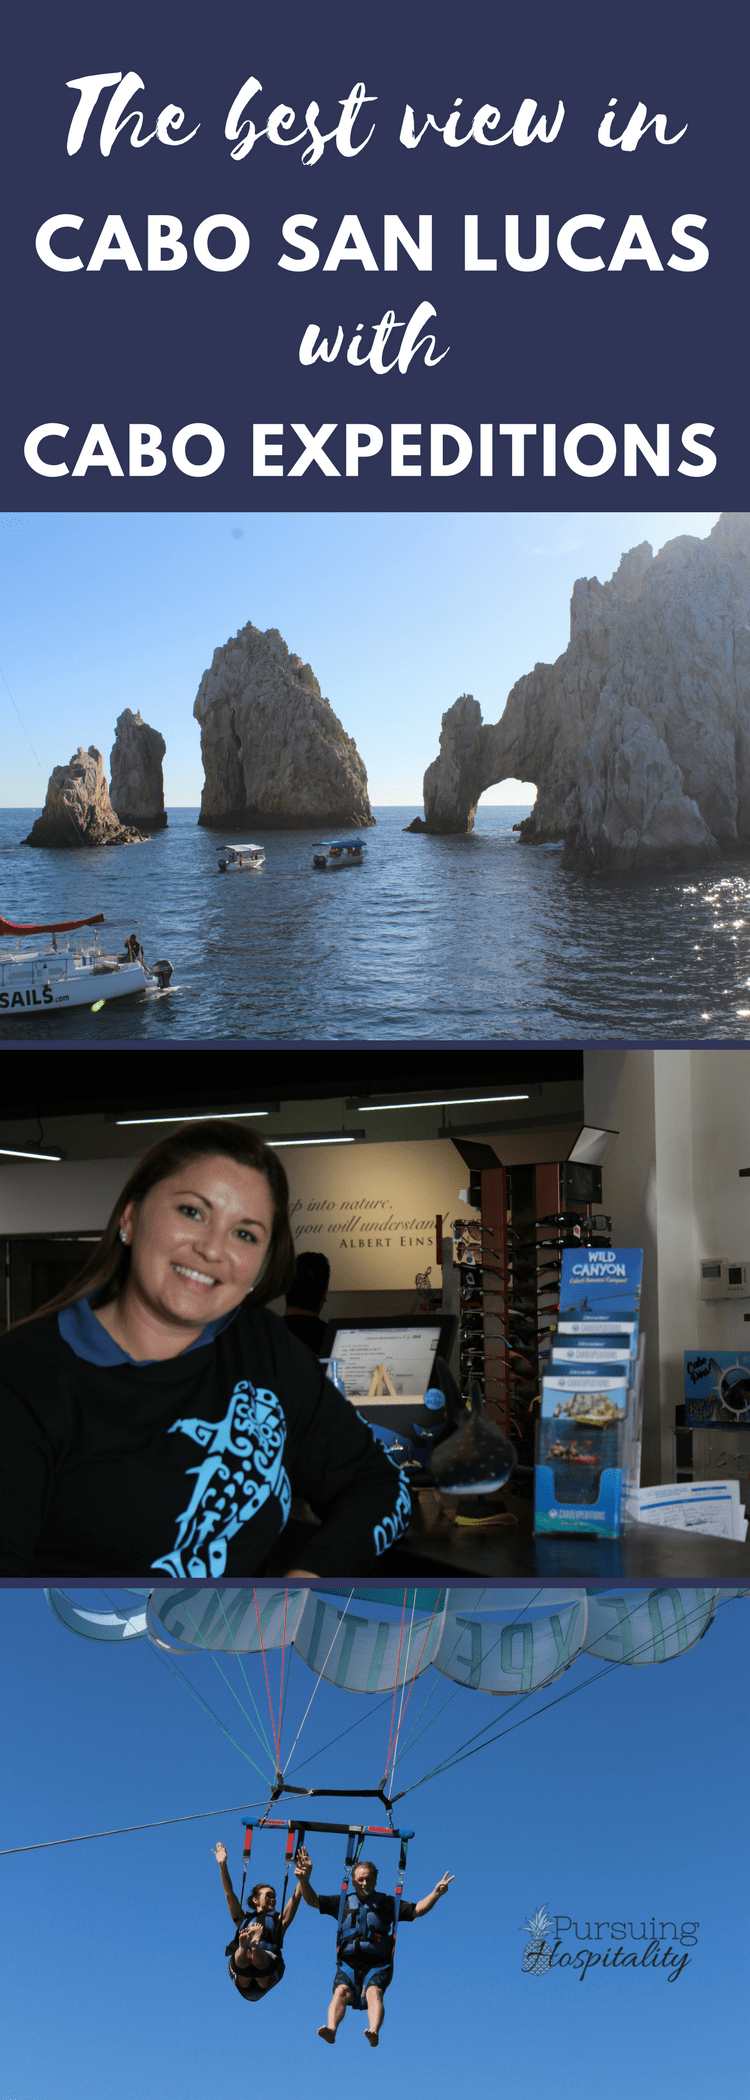 Cabo San Lucas Cabo Expeditions